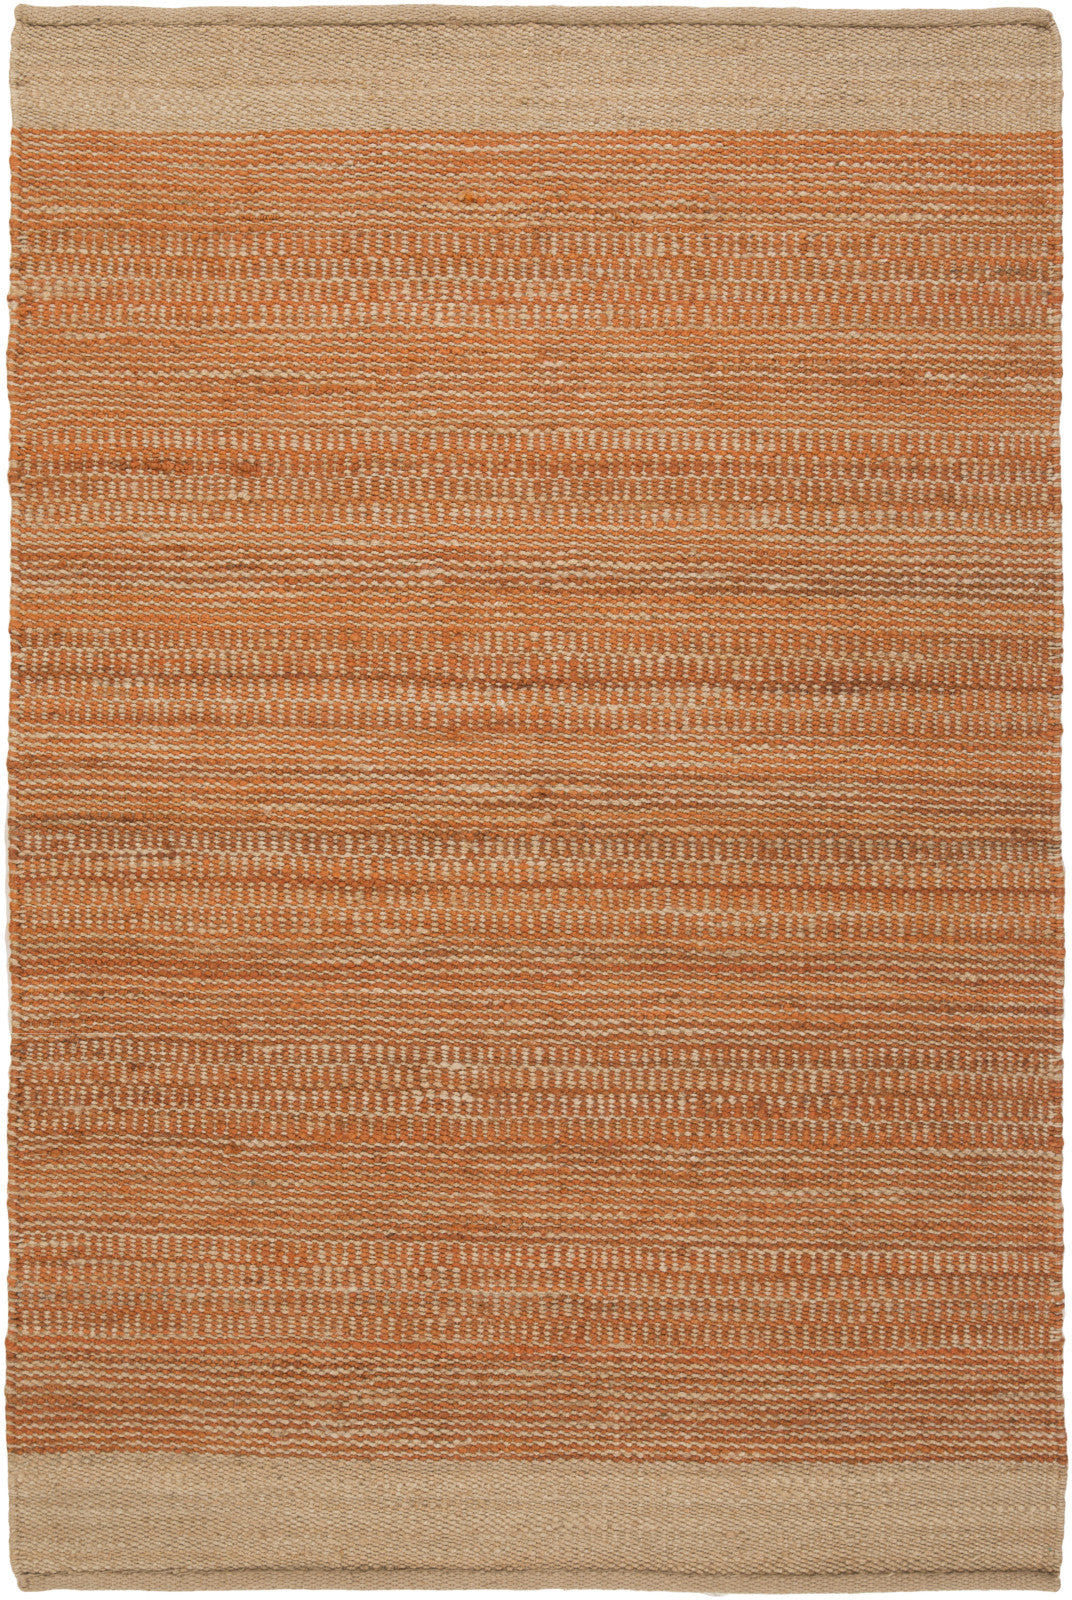 Surya Davidson DVD-1006 Orange Area Rug main image